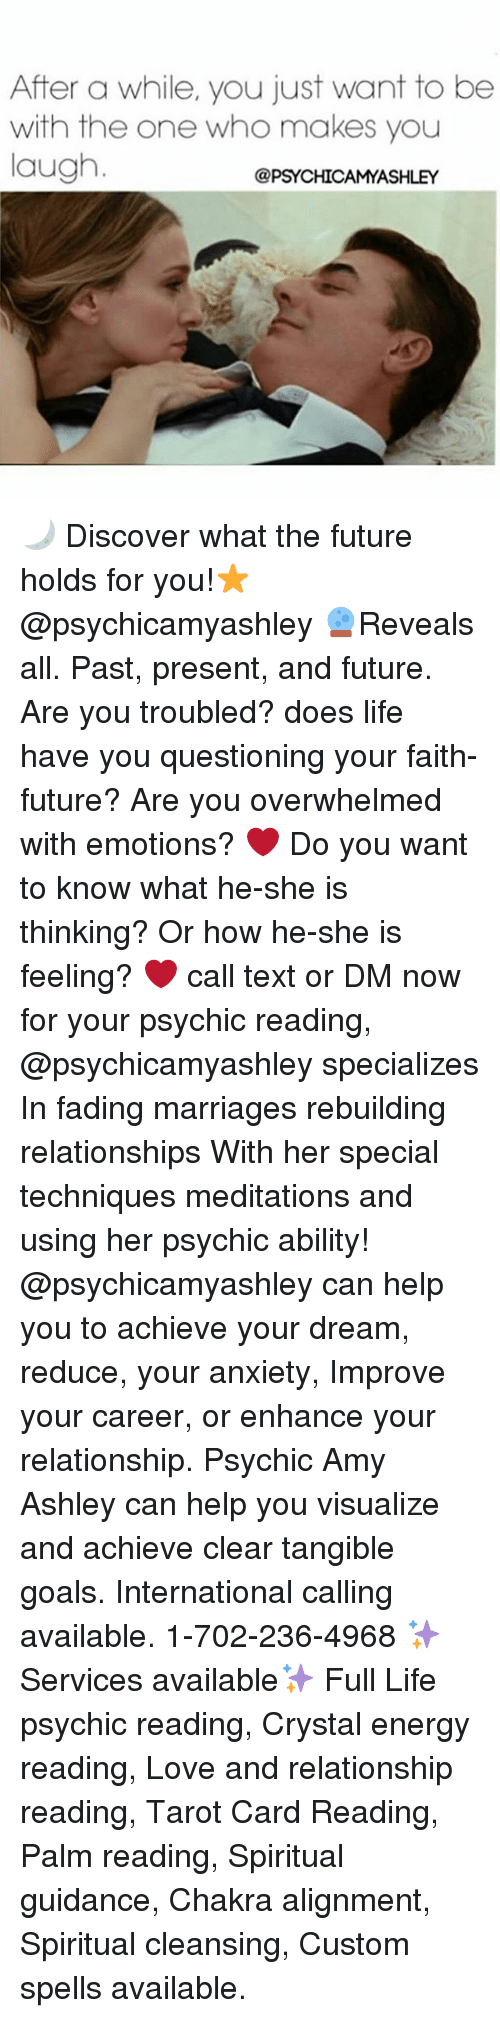 Energy, Future, and Goals: After a while, you just want to be  with the one who makes you  laugh  @PSYCHICAMYASHLEY 🌙 Discover what the future holds for you!⭐@psychicamyashley 🔮Reveals all. Past, present, and future. Are you troubled? does life have you questioning your faith-future? Are you overwhelmed with emotions? ❤ Do you want to know what he-she is thinking? Or how he-she is feeling? ❤ call text or DM now for your psychic reading, @psychicamyashley specializes In fading marriages rebuilding relationships With her special techniques meditations and using her psychic ability! @psychicamyashley can help you to achieve your dream, reduce, your anxiety, Improve your career, or enhance your relationship. Psychic Amy Ashley can help you visualize and achieve clear tangible goals. International calling available. 1-702-236-4968 ✨Services available✨ Full Life psychic reading, Crystal energy reading, Love and relationship reading, Tarot Card Reading, Palm reading, Spiritual guidance, Chakra alignment, Spiritual cleansing, Custom spells available.